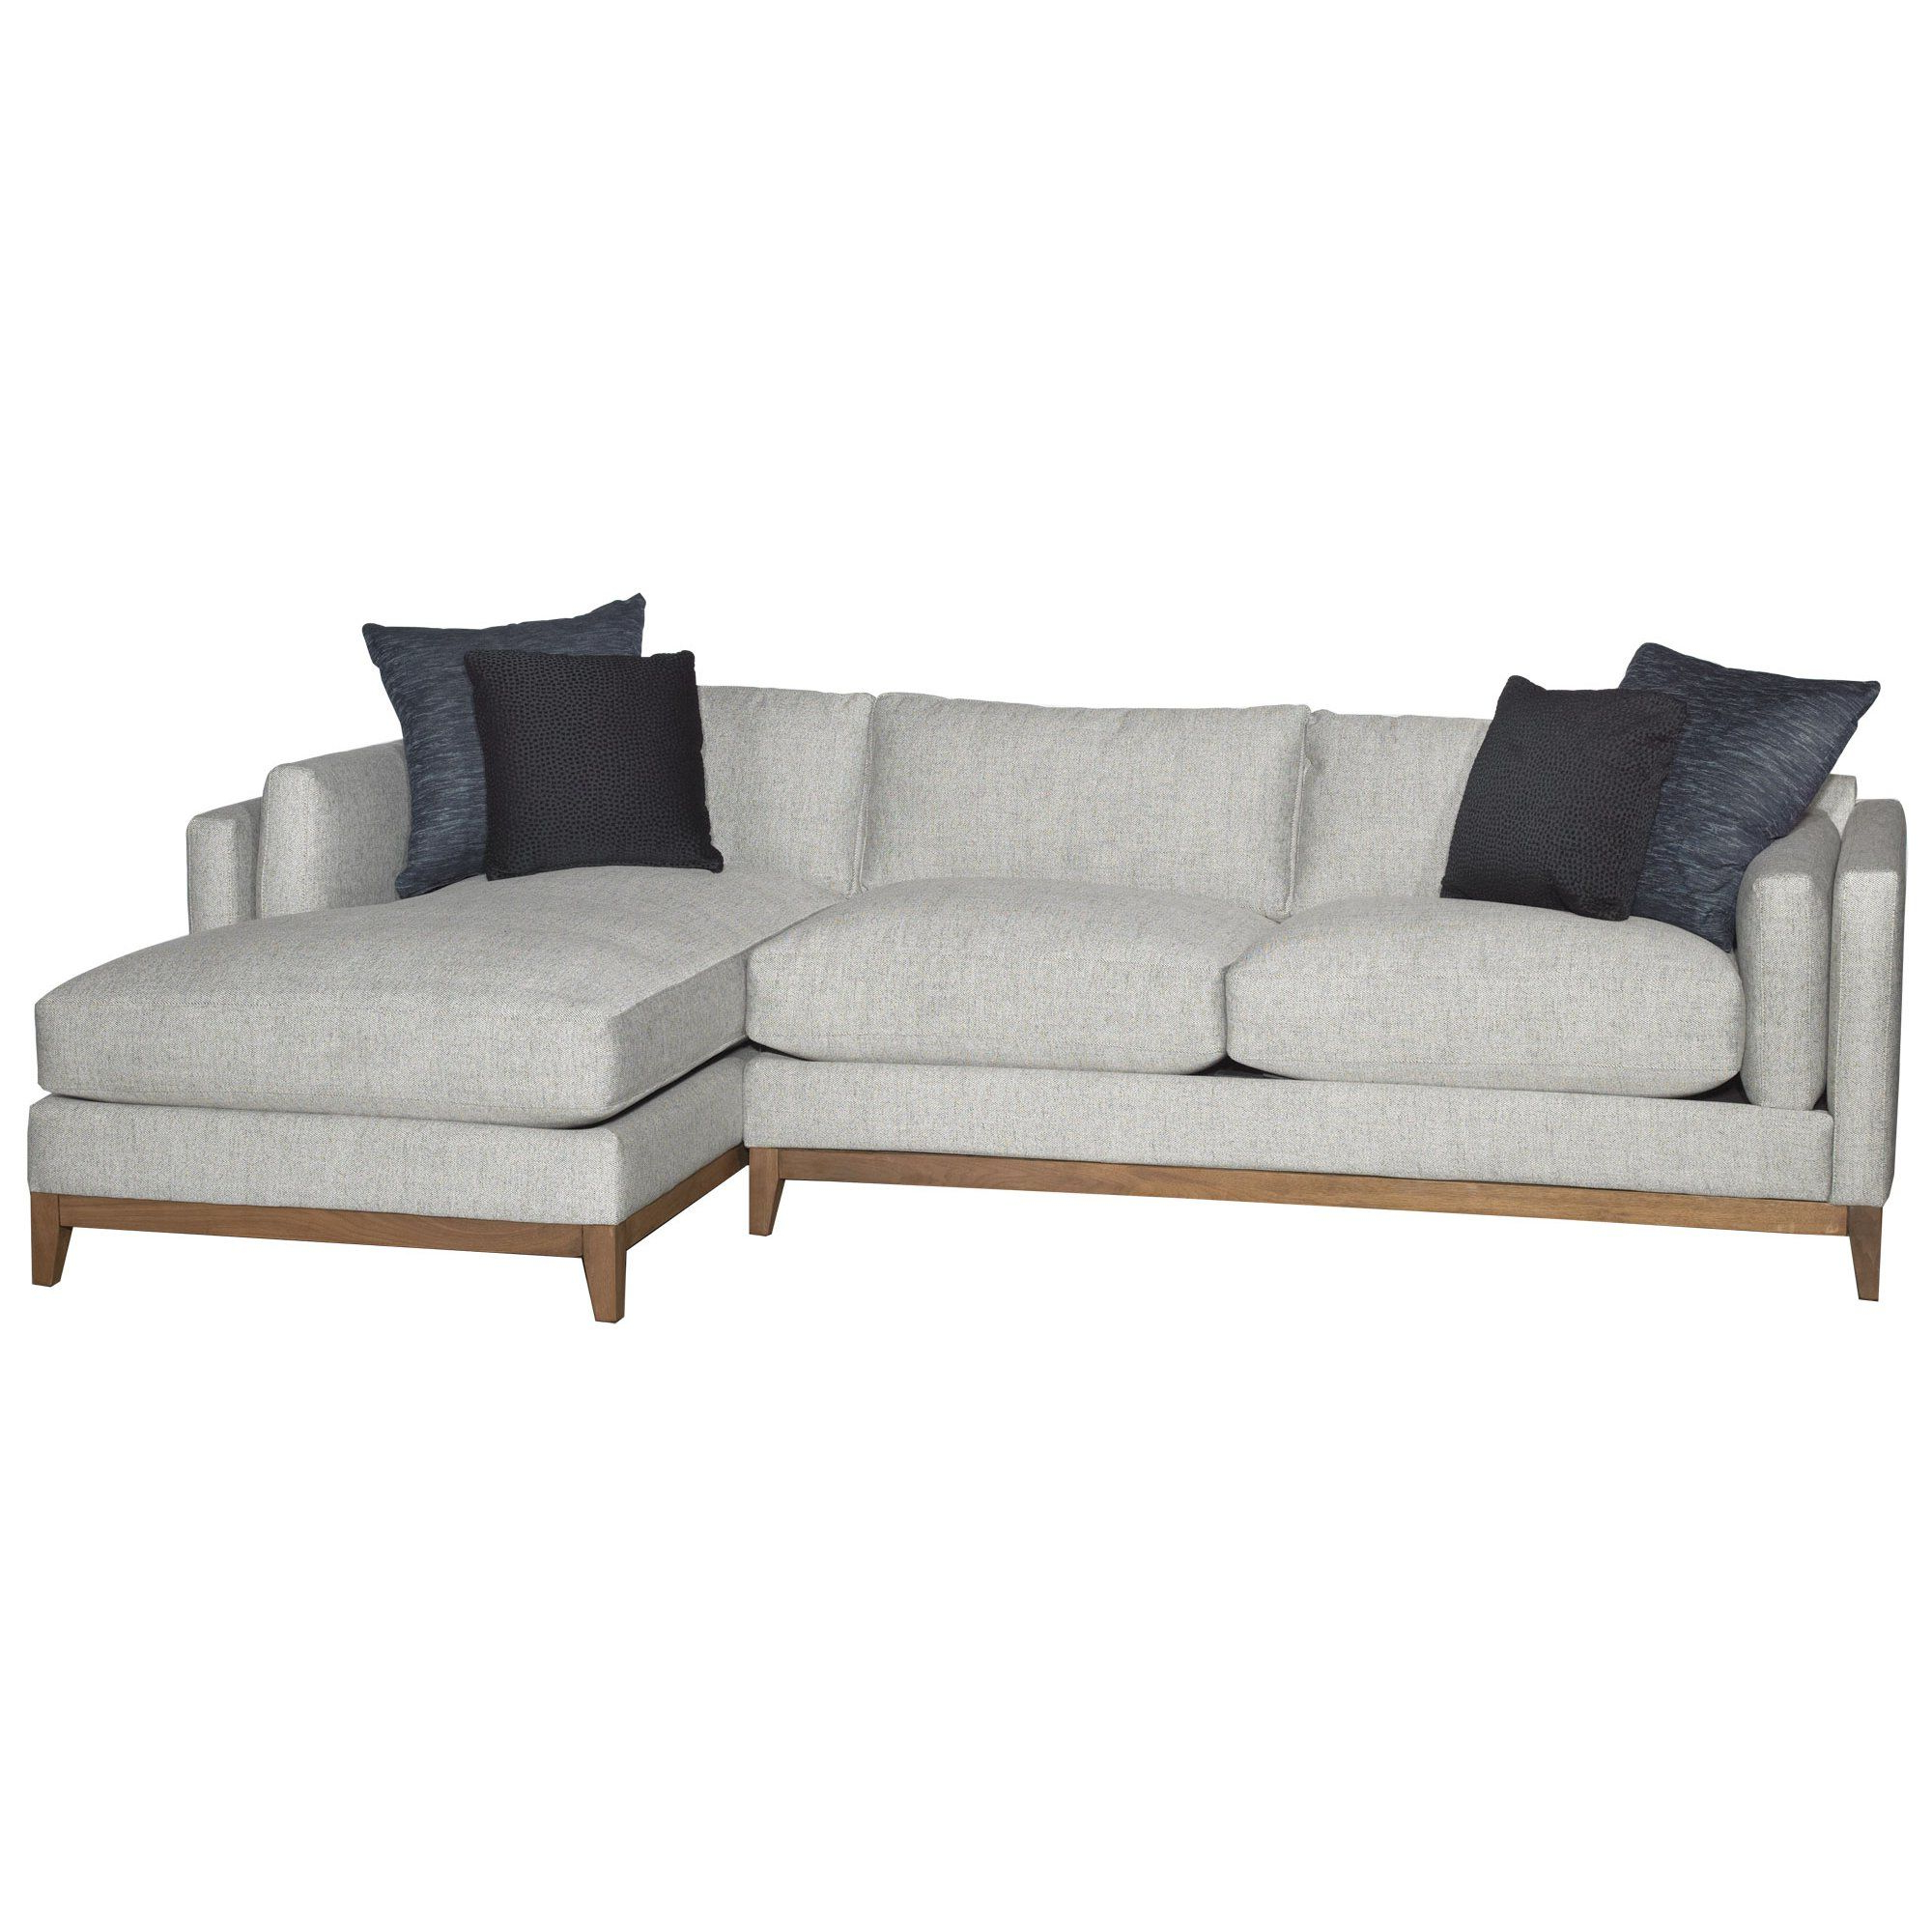 2 For Most Current Dulce Right Sectional Sofas Twill Stone (View 18 of 25)